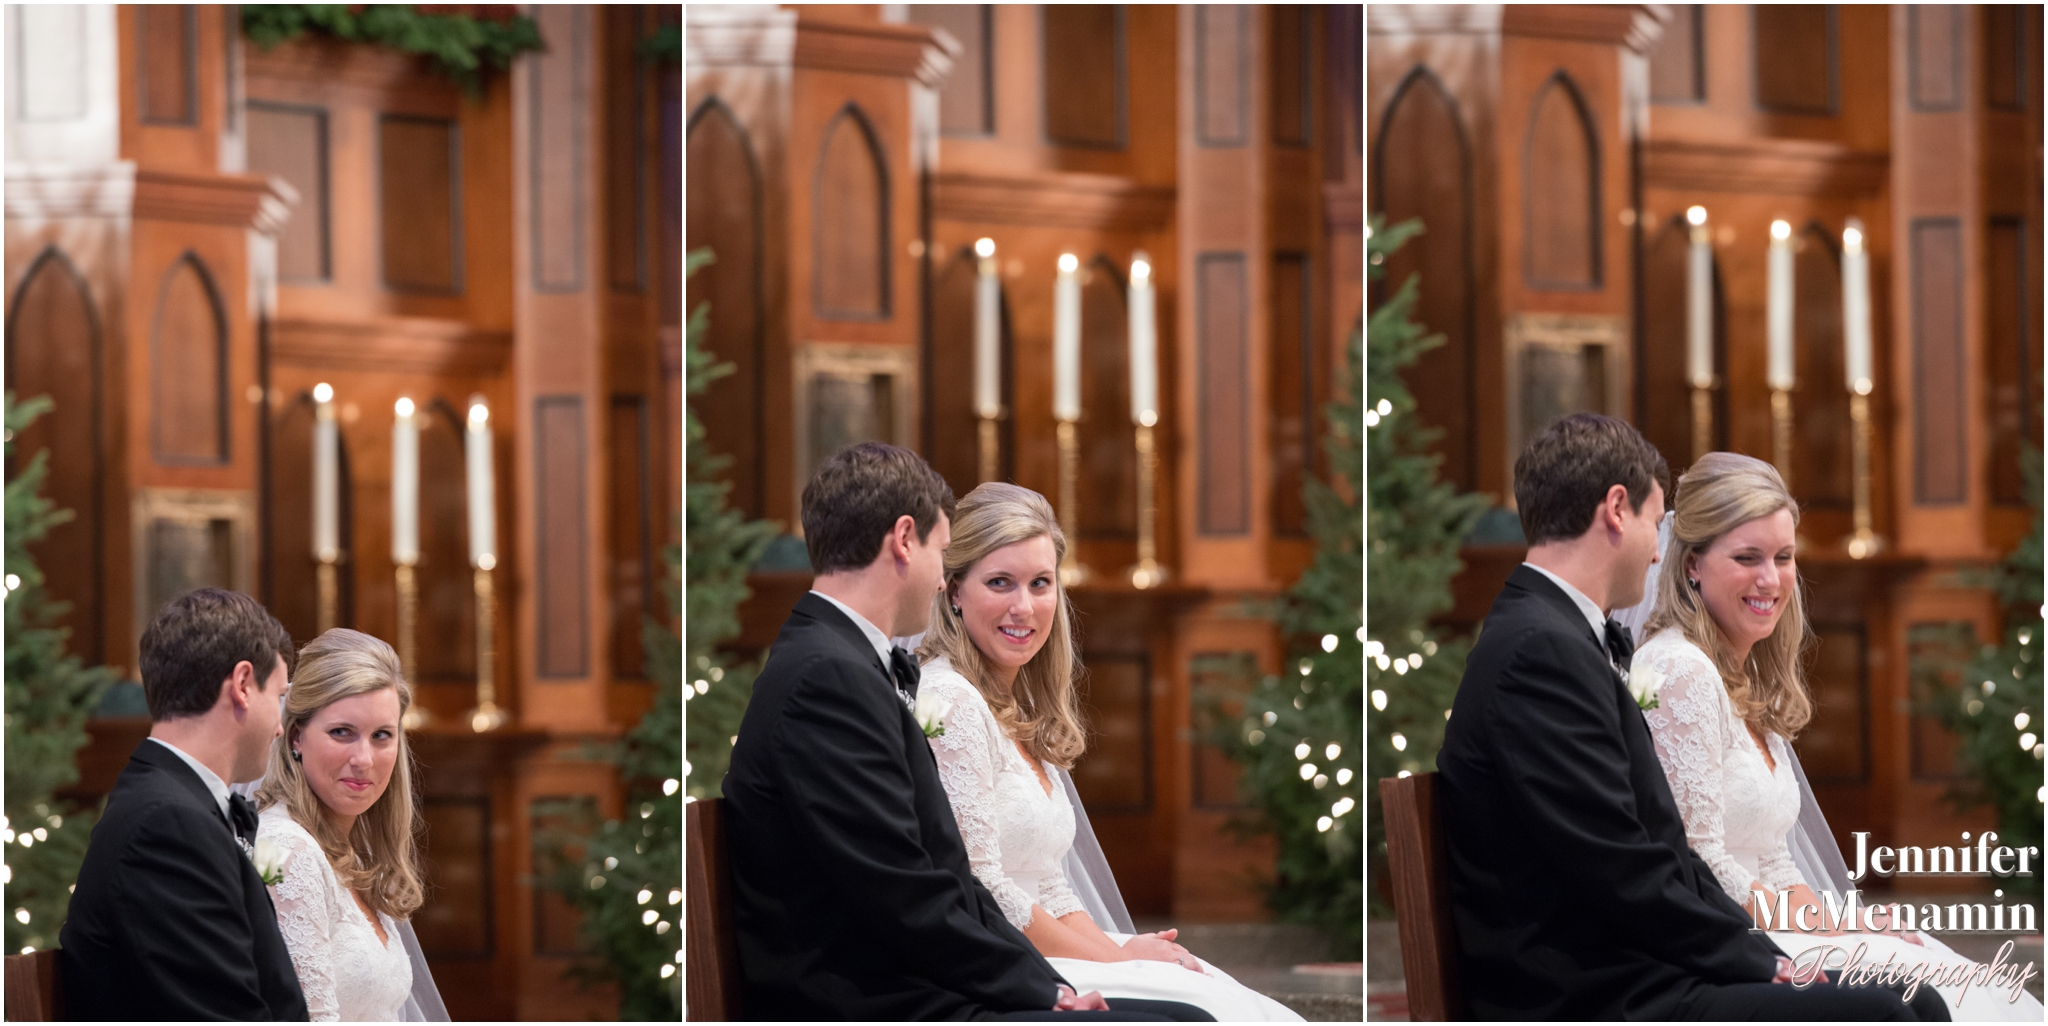 0044_RyanClemmens_01217-0323_JenniferMcMenaminPhotography_Immaculate-Conception-Church_The-Cloisters_Baltimore-wedding-photography_Baltimore-wedding-photographer